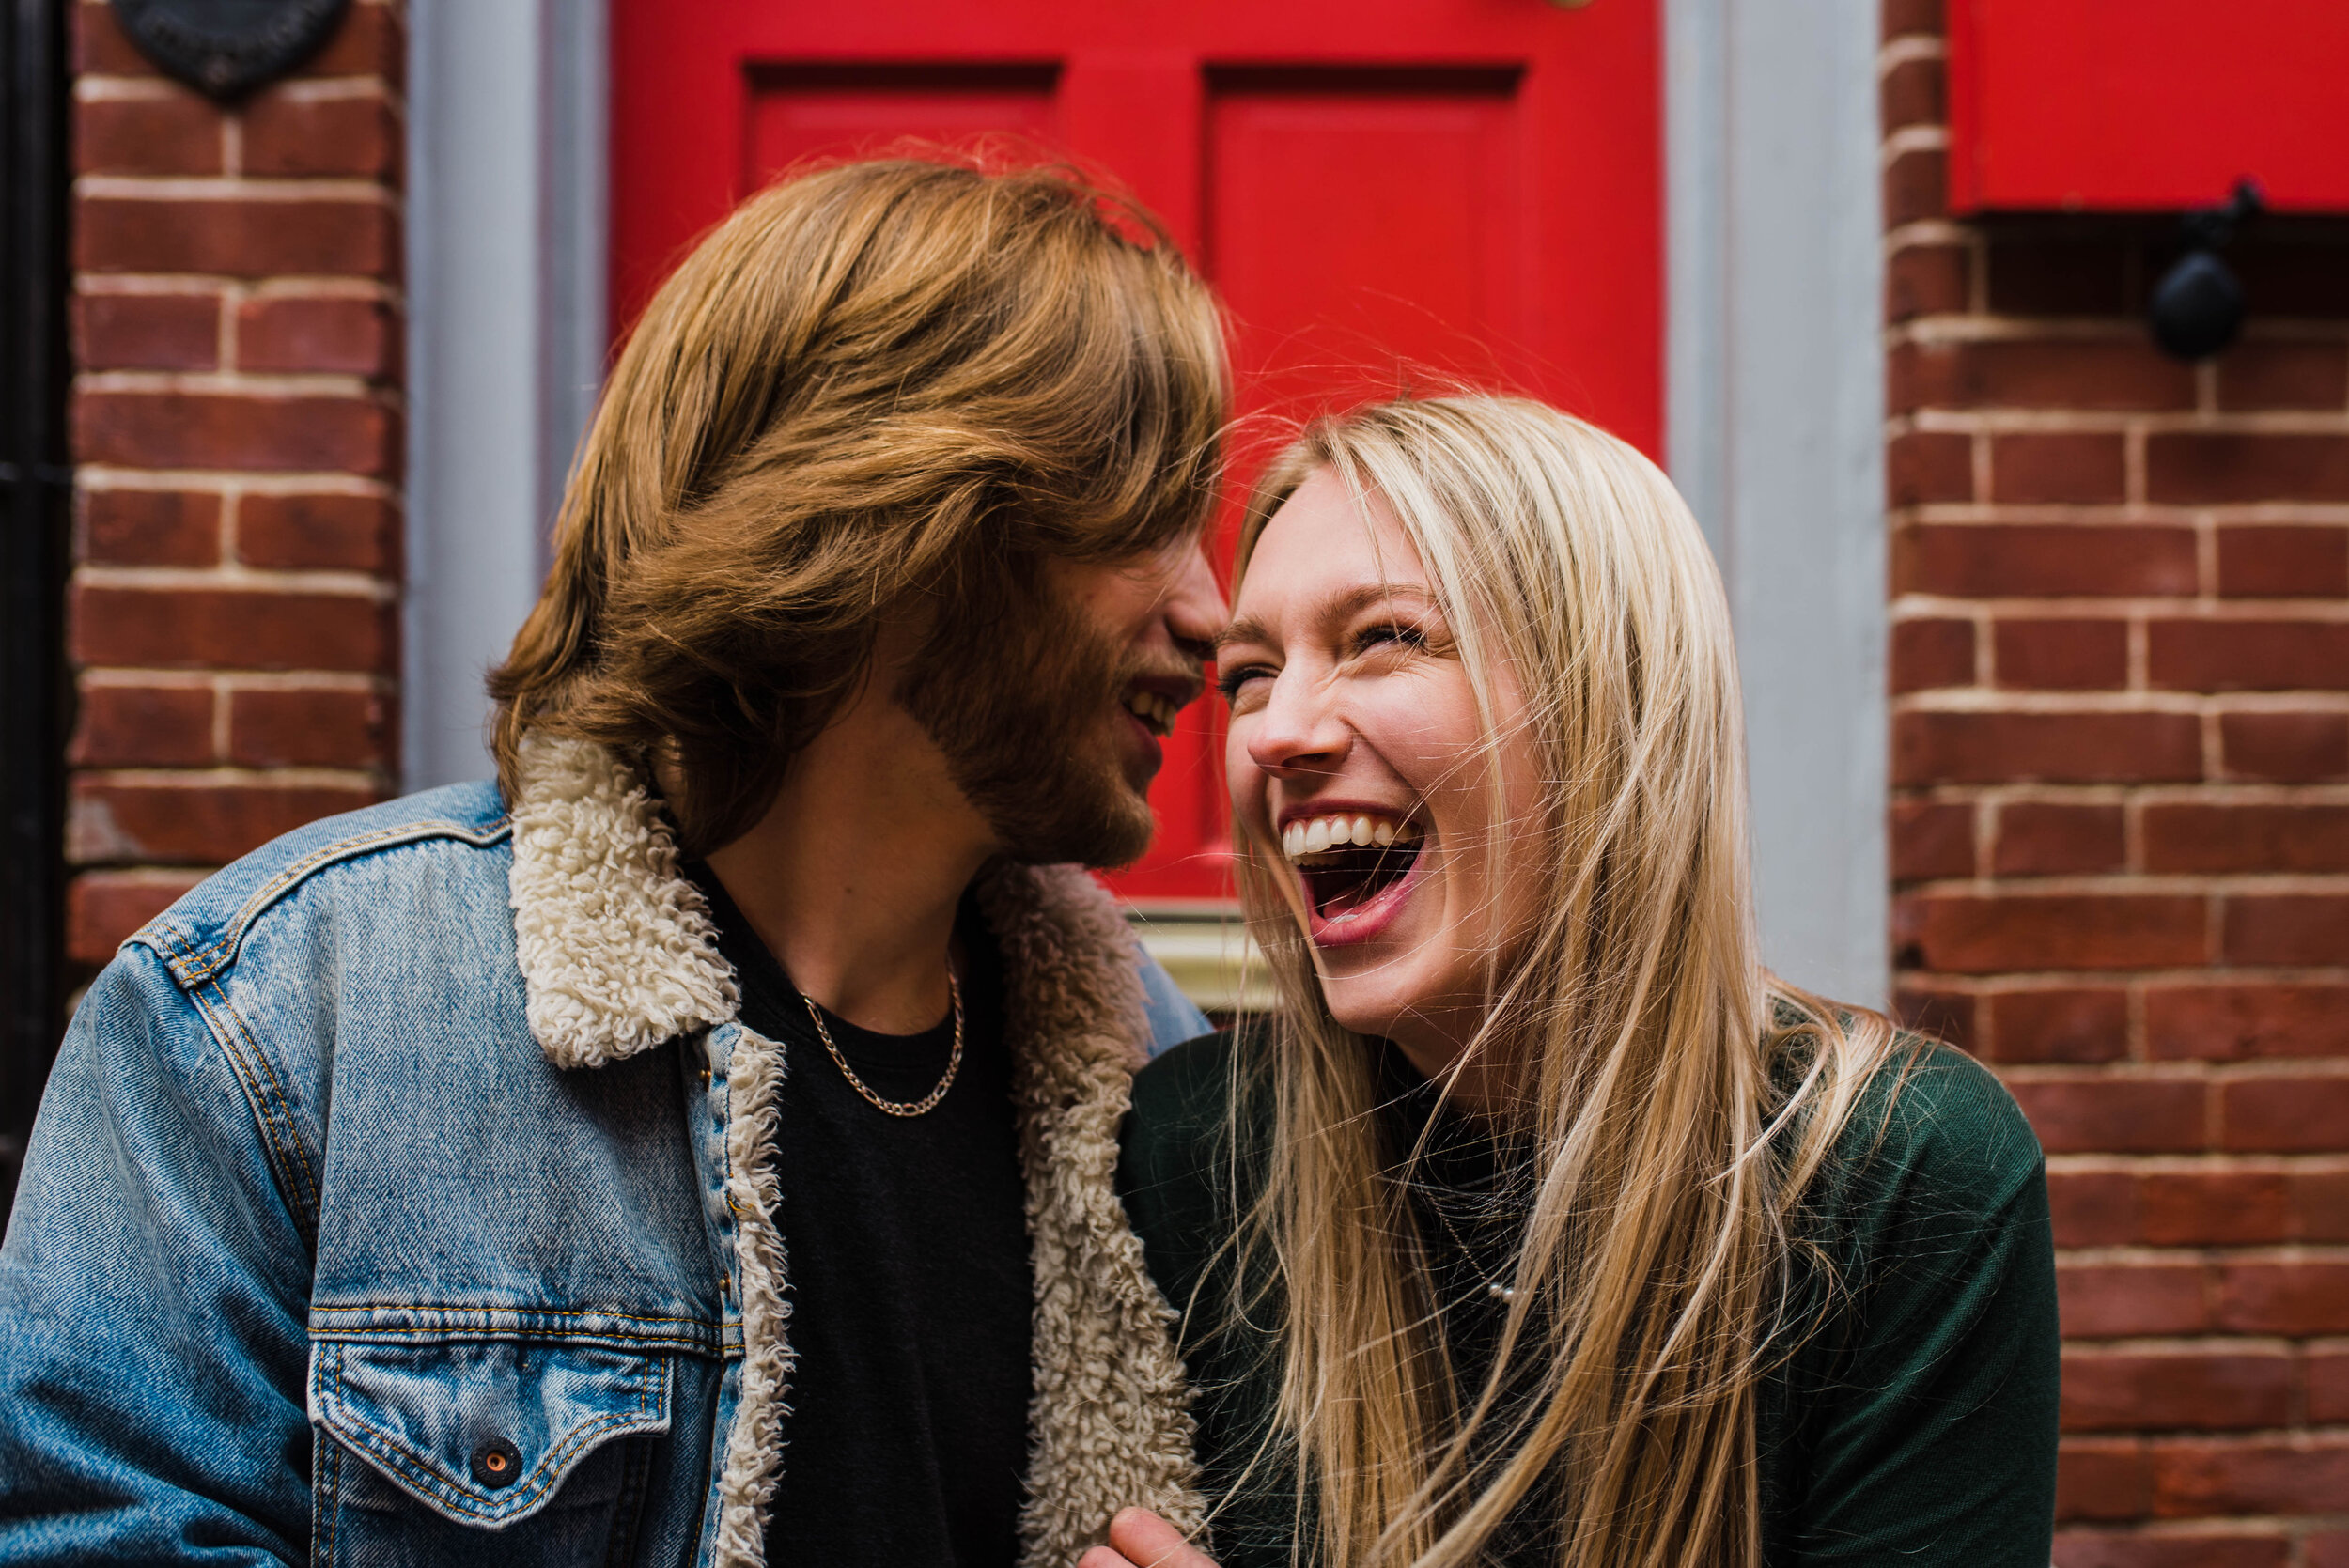 Laughing couple in front of a red door.